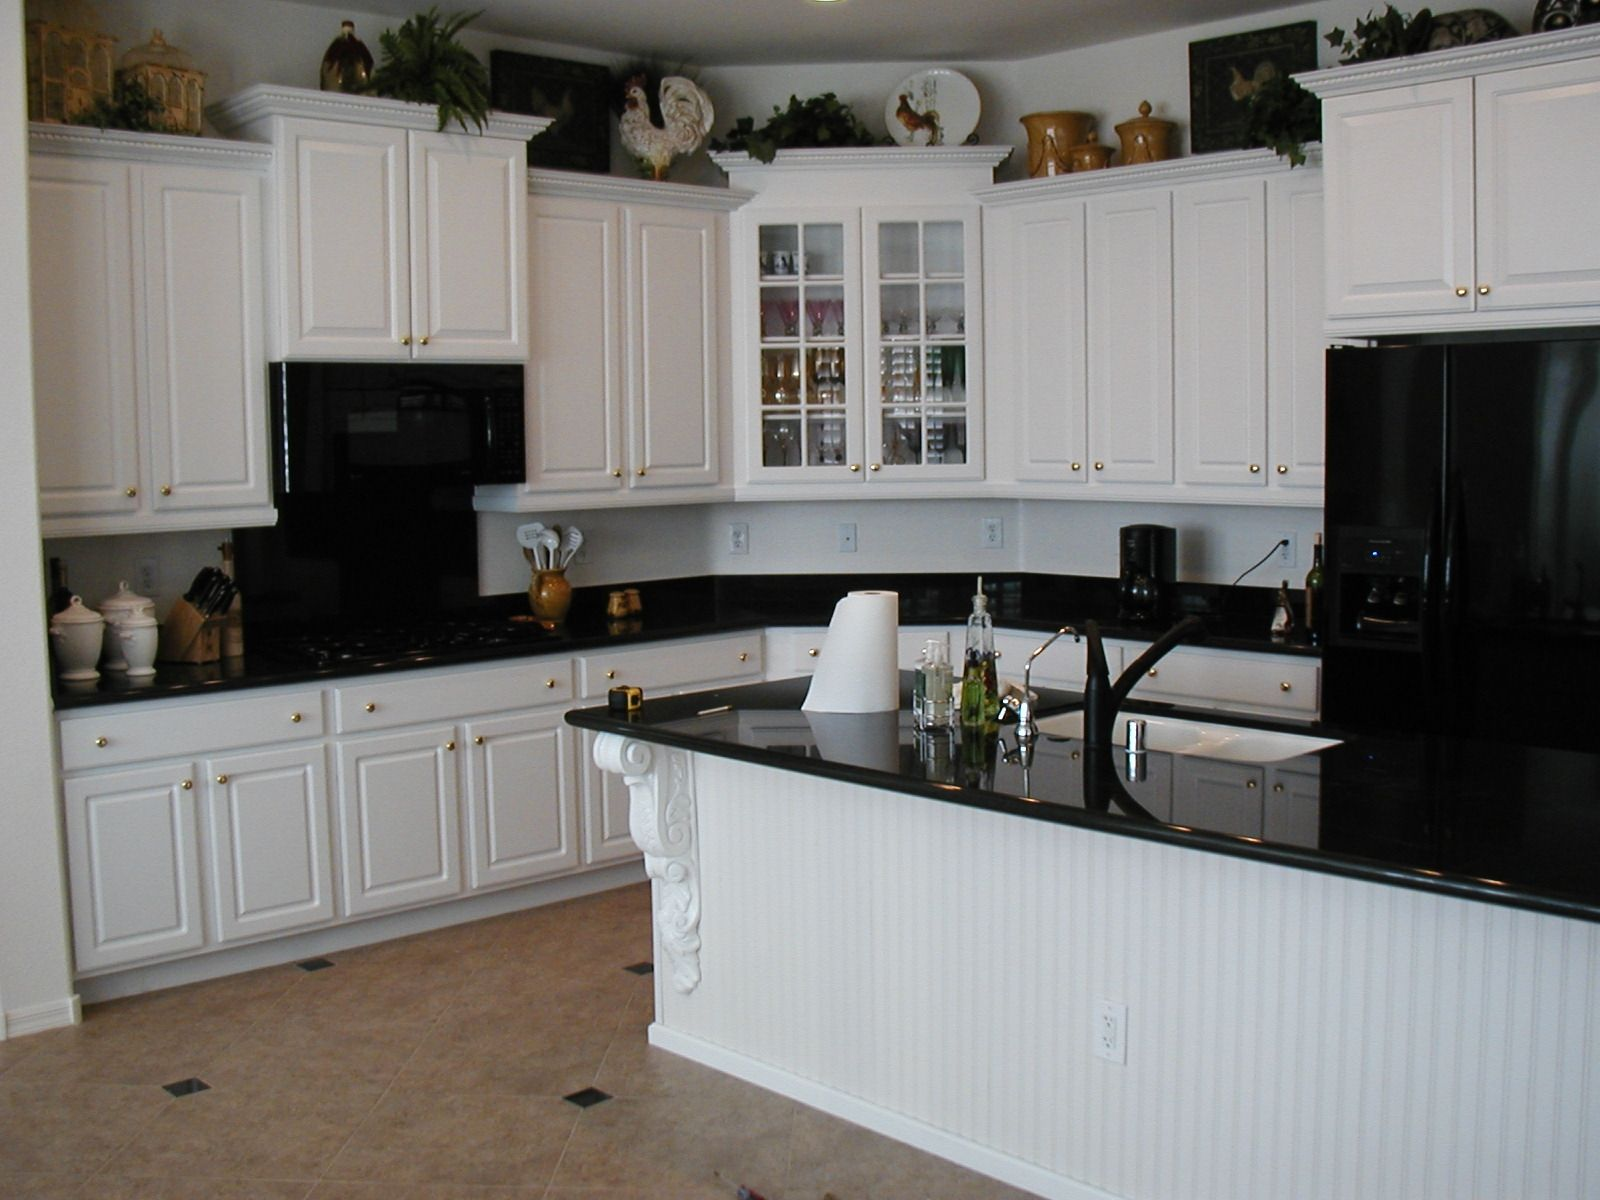 Cabinet For Kitchen Appliances Off White Kitchen Cabinets With Black Appliances Roselawnlutheran